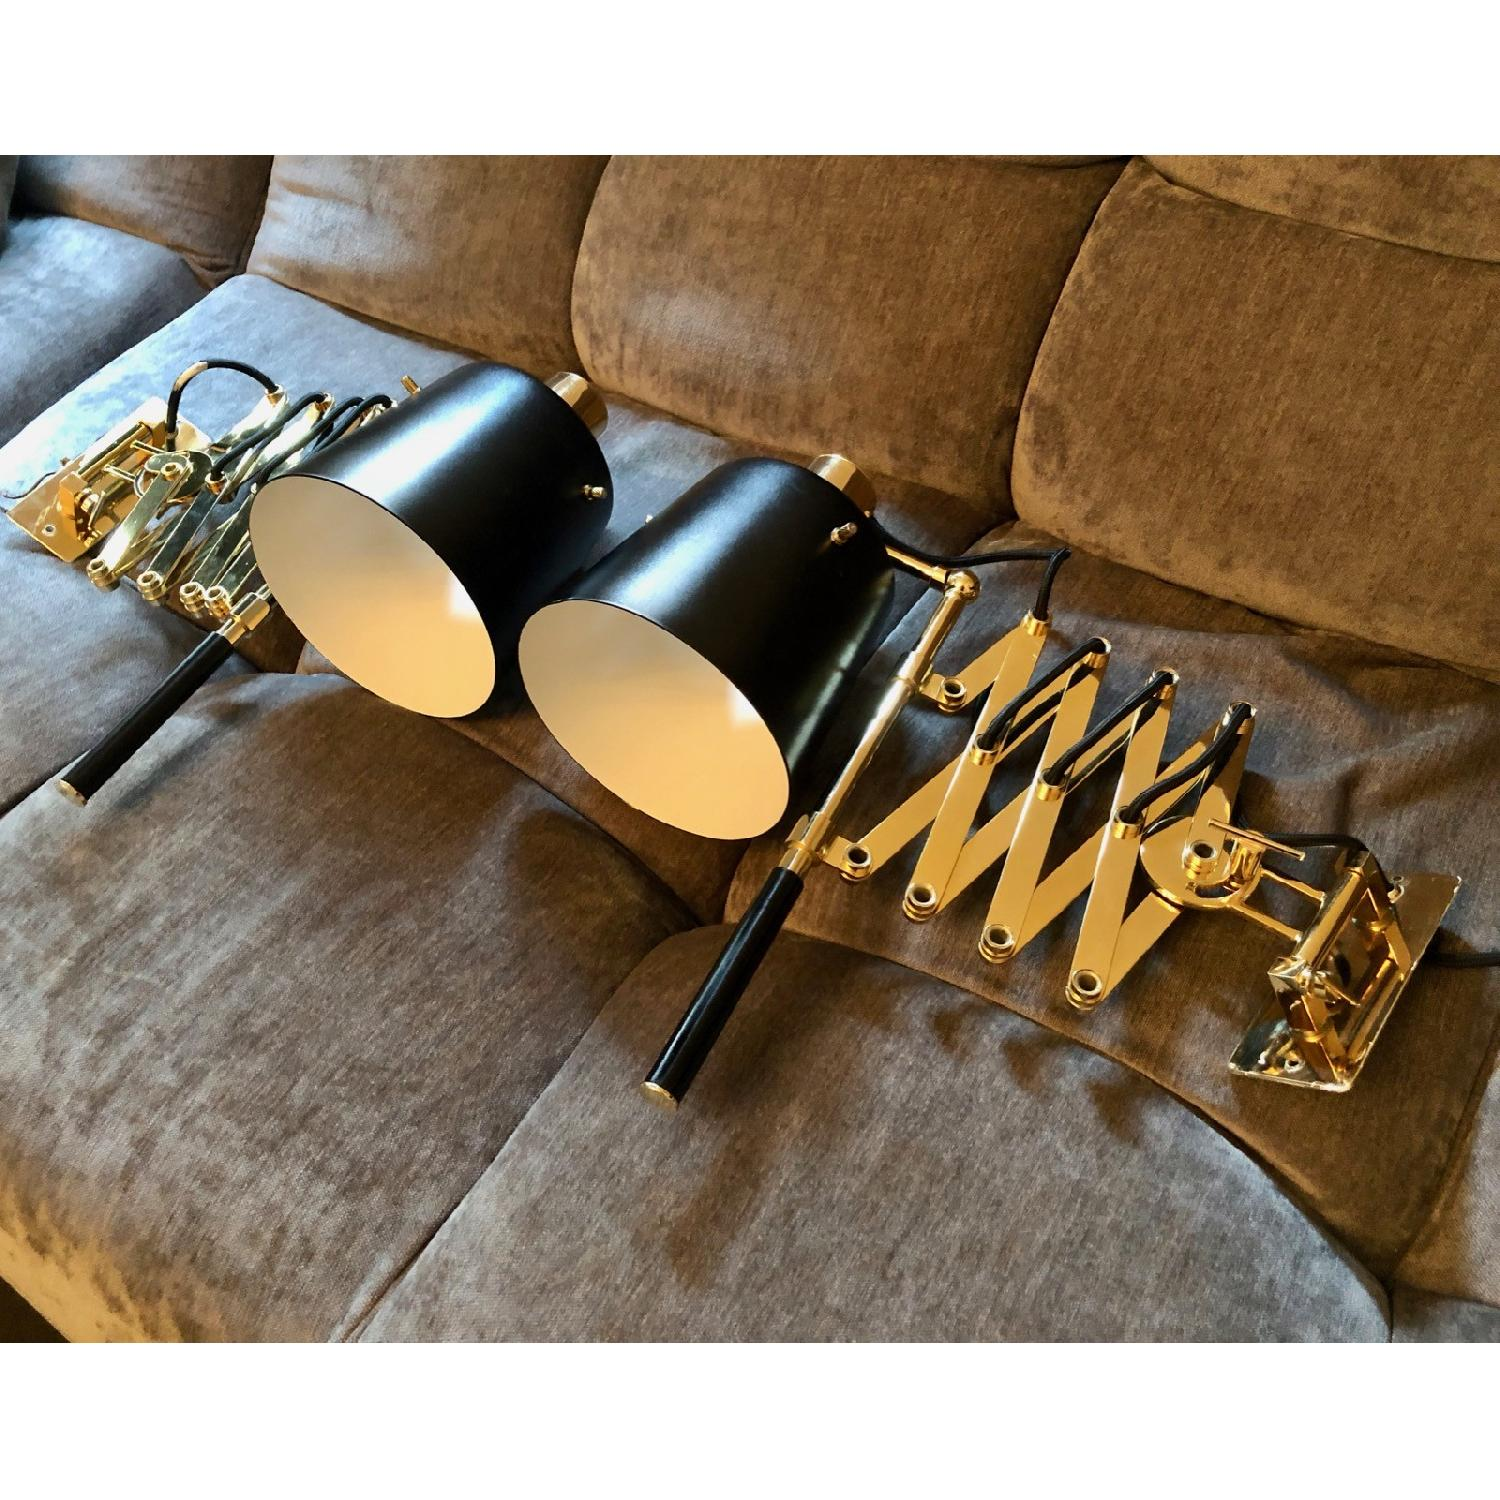 Delighttfull Pastorius Wall Lamps in Gold/Black-6